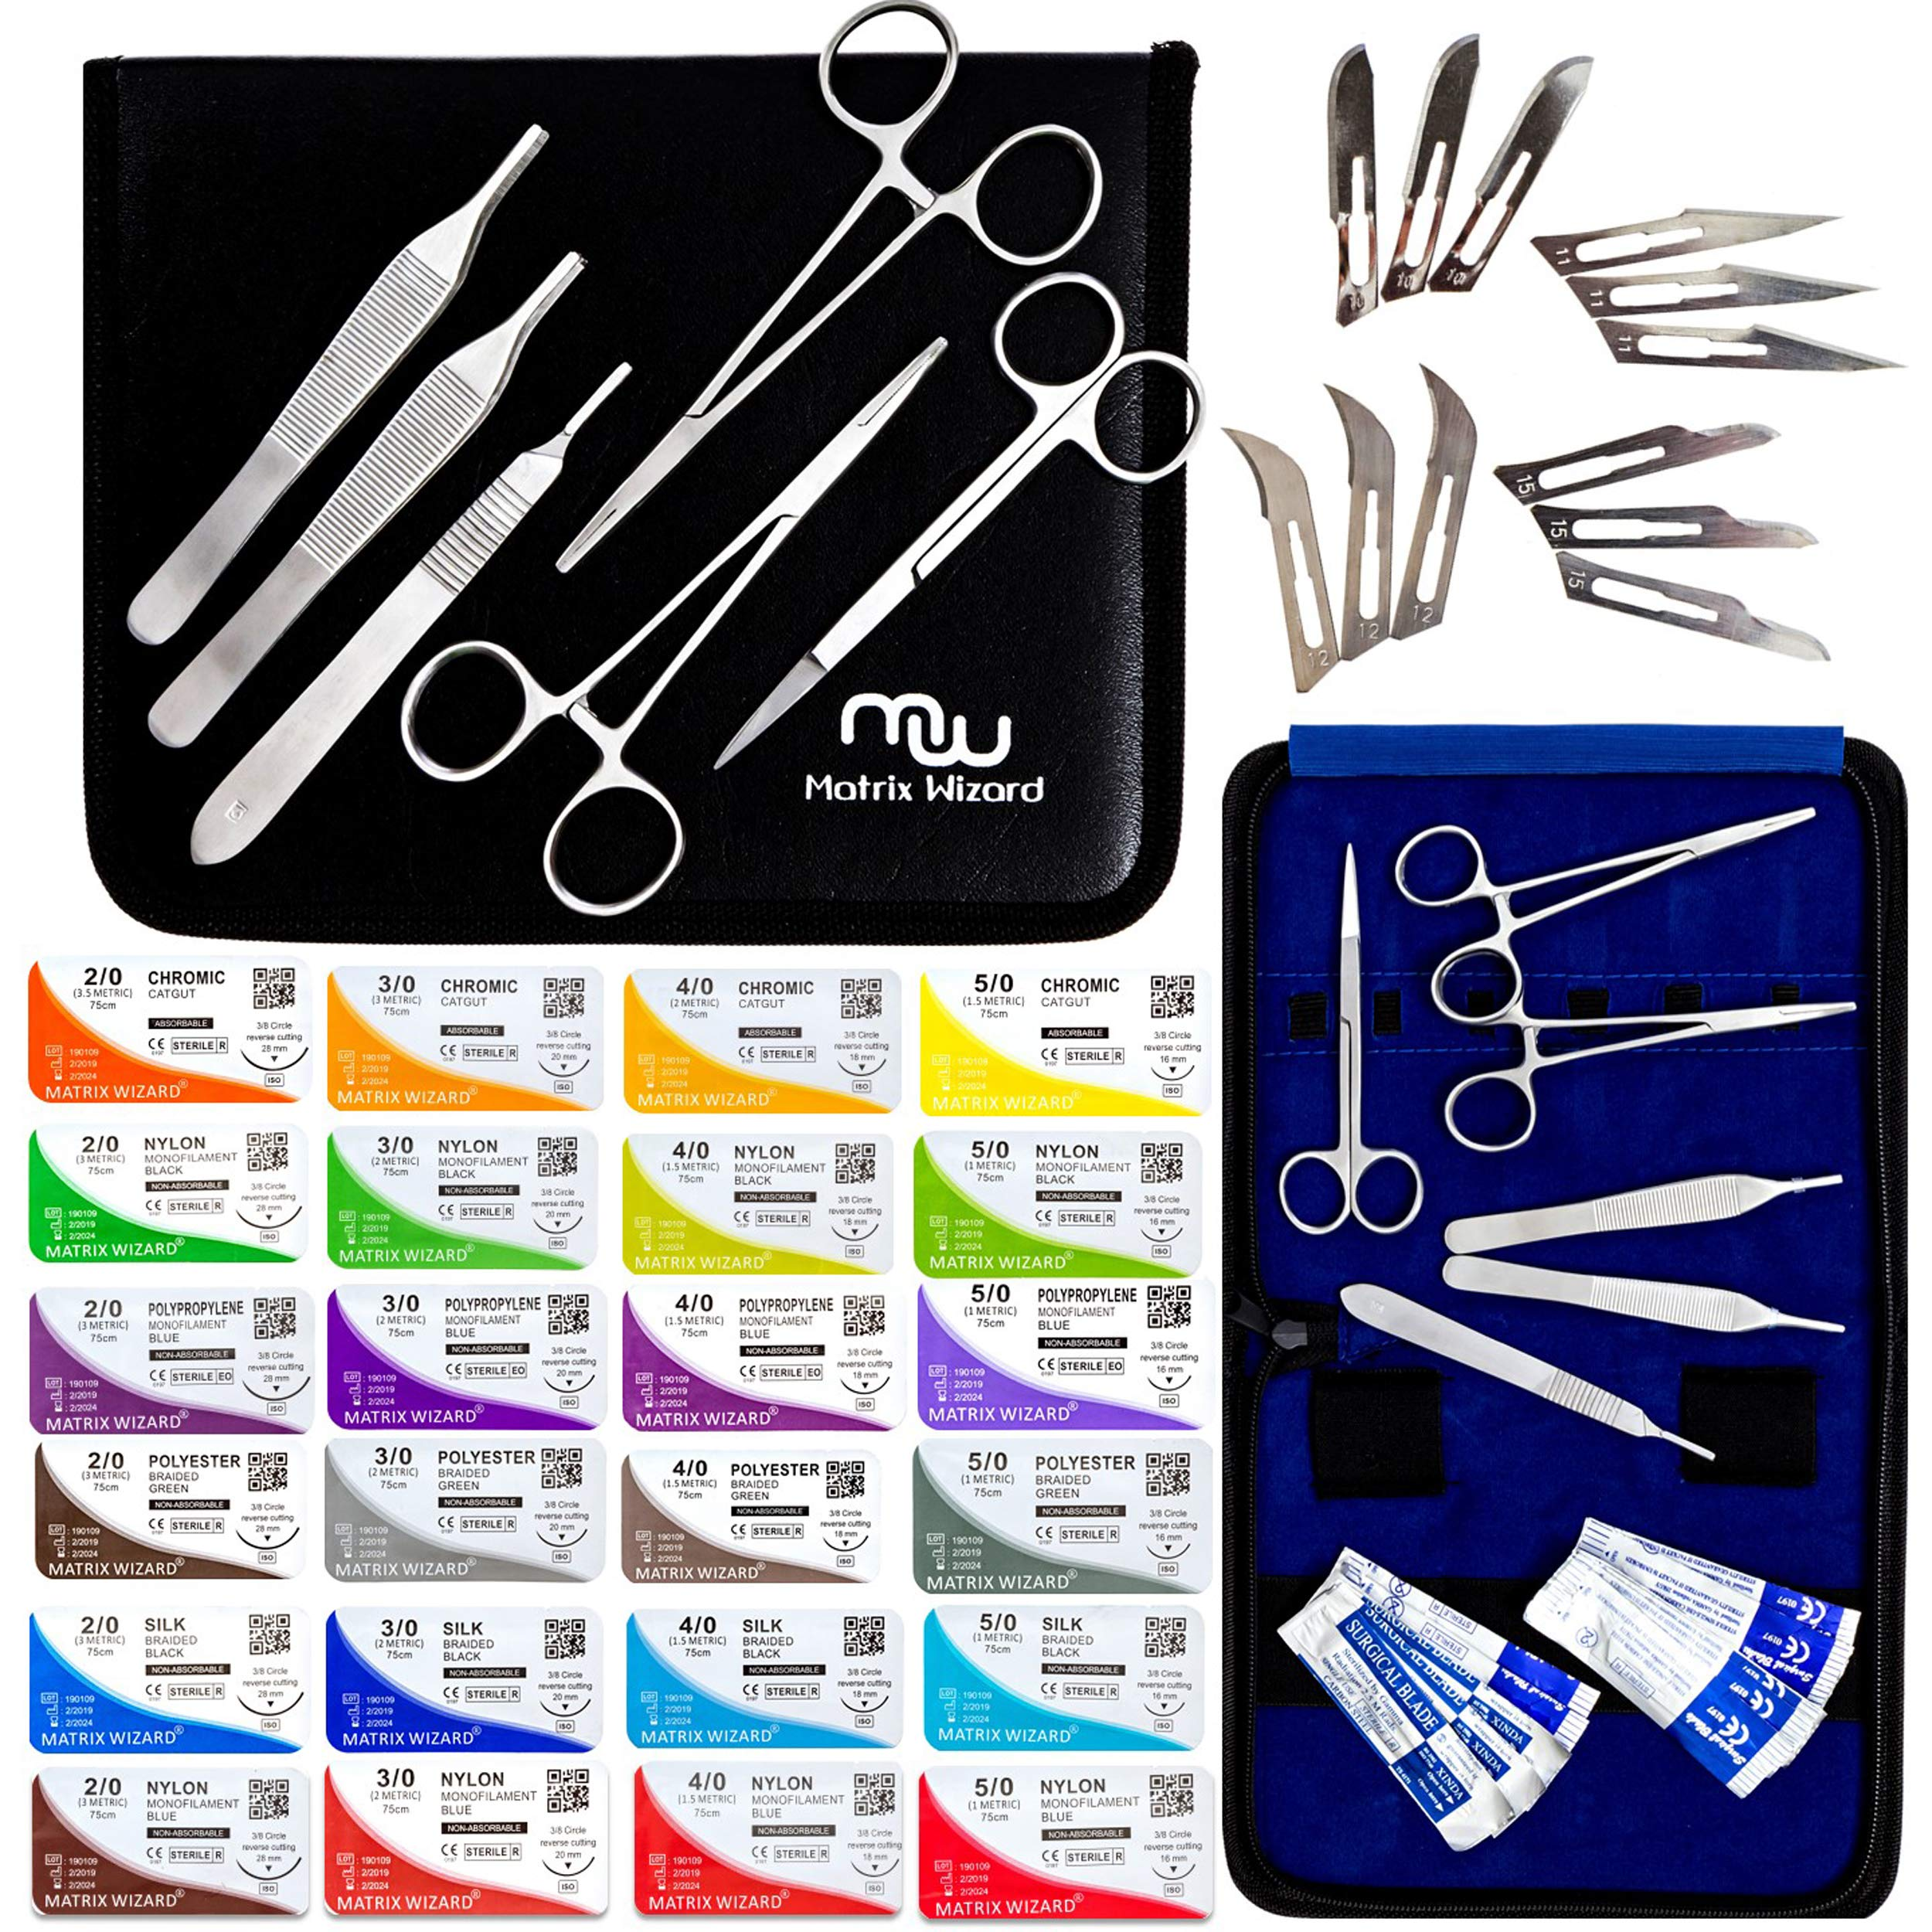 Mixed Sterile Suture Threads with Needle + Training Tools (Absorbable: Chromic Catgut; Non-Absorbable: Nylon, Silk, Polyester, Polypropylene) - Medical, Nursing, and Veterinary Students Kit (43 Pack) by Matrix Wizard